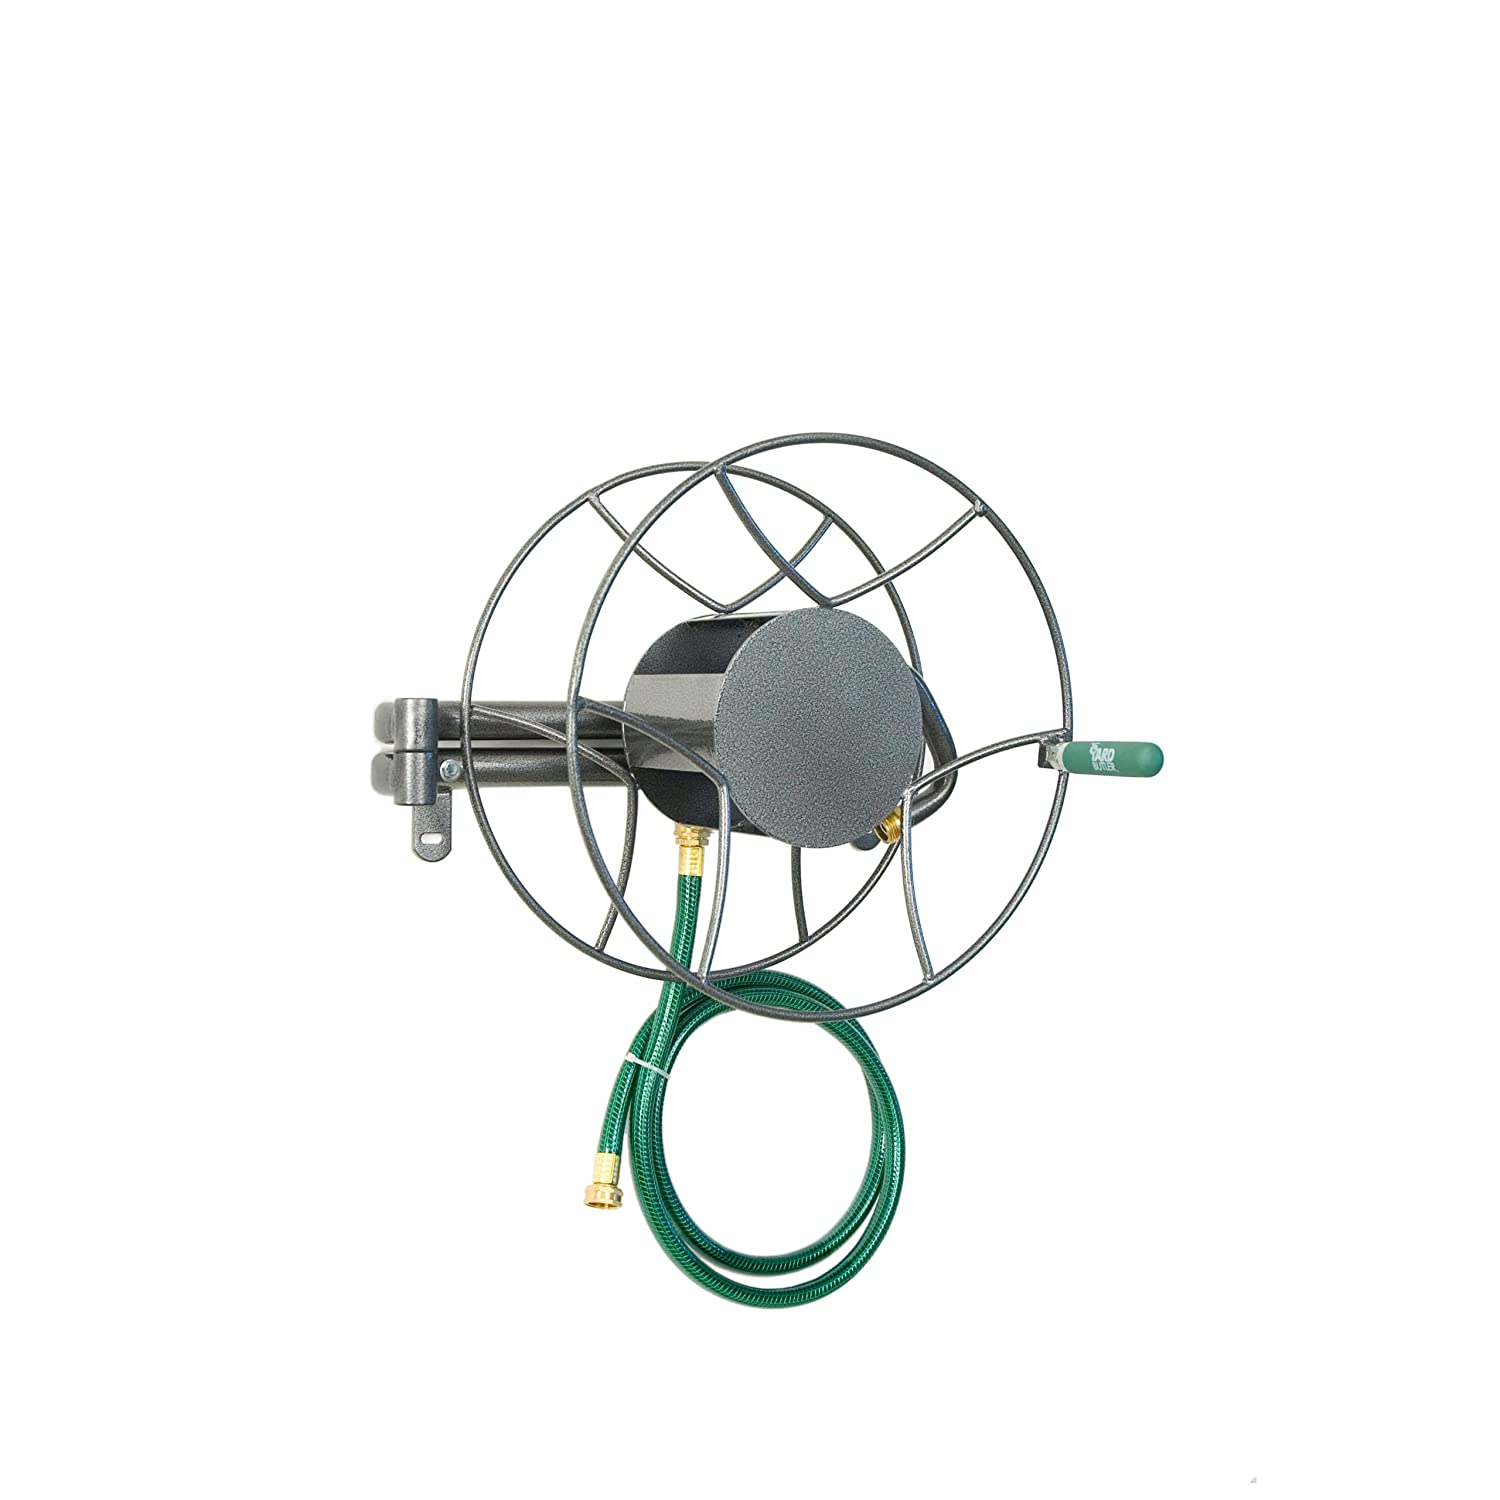 Amazon.com : Yard Butler SRWM 180 Wall Mounted Hose Reel : Garden Hose Reels  : Garden U0026 Outdoor